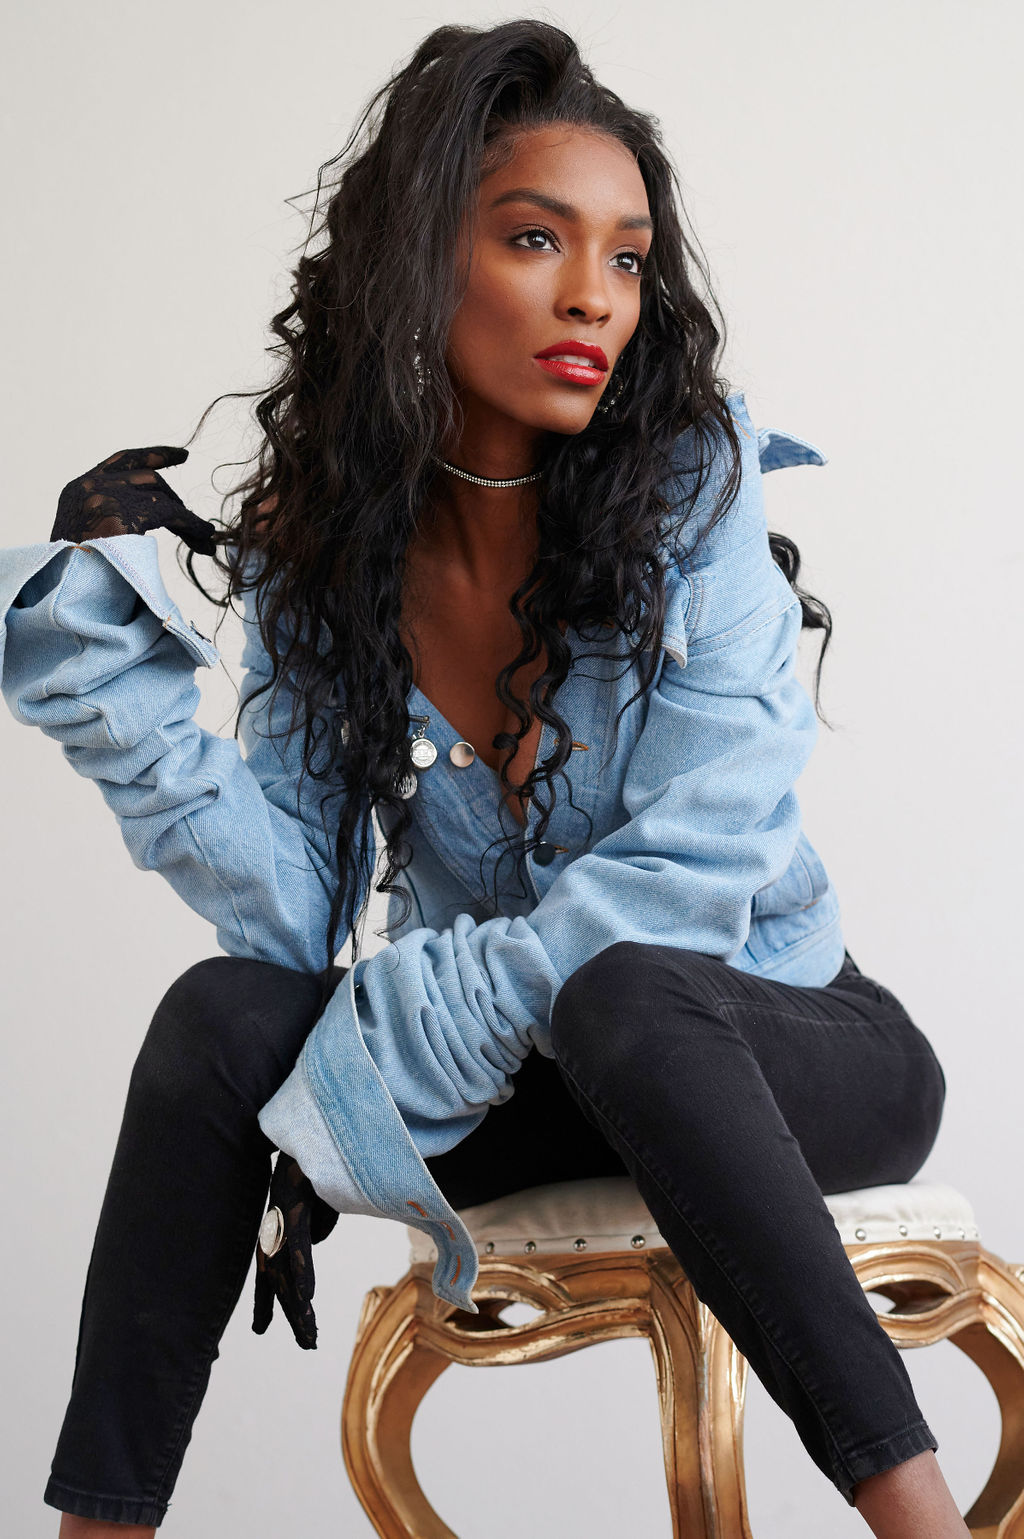 Annju'lia Smalls In Y/Project-styled by melissa-lcm-sheldon botler photography-denim jacket-elongated sleeves-high fashion